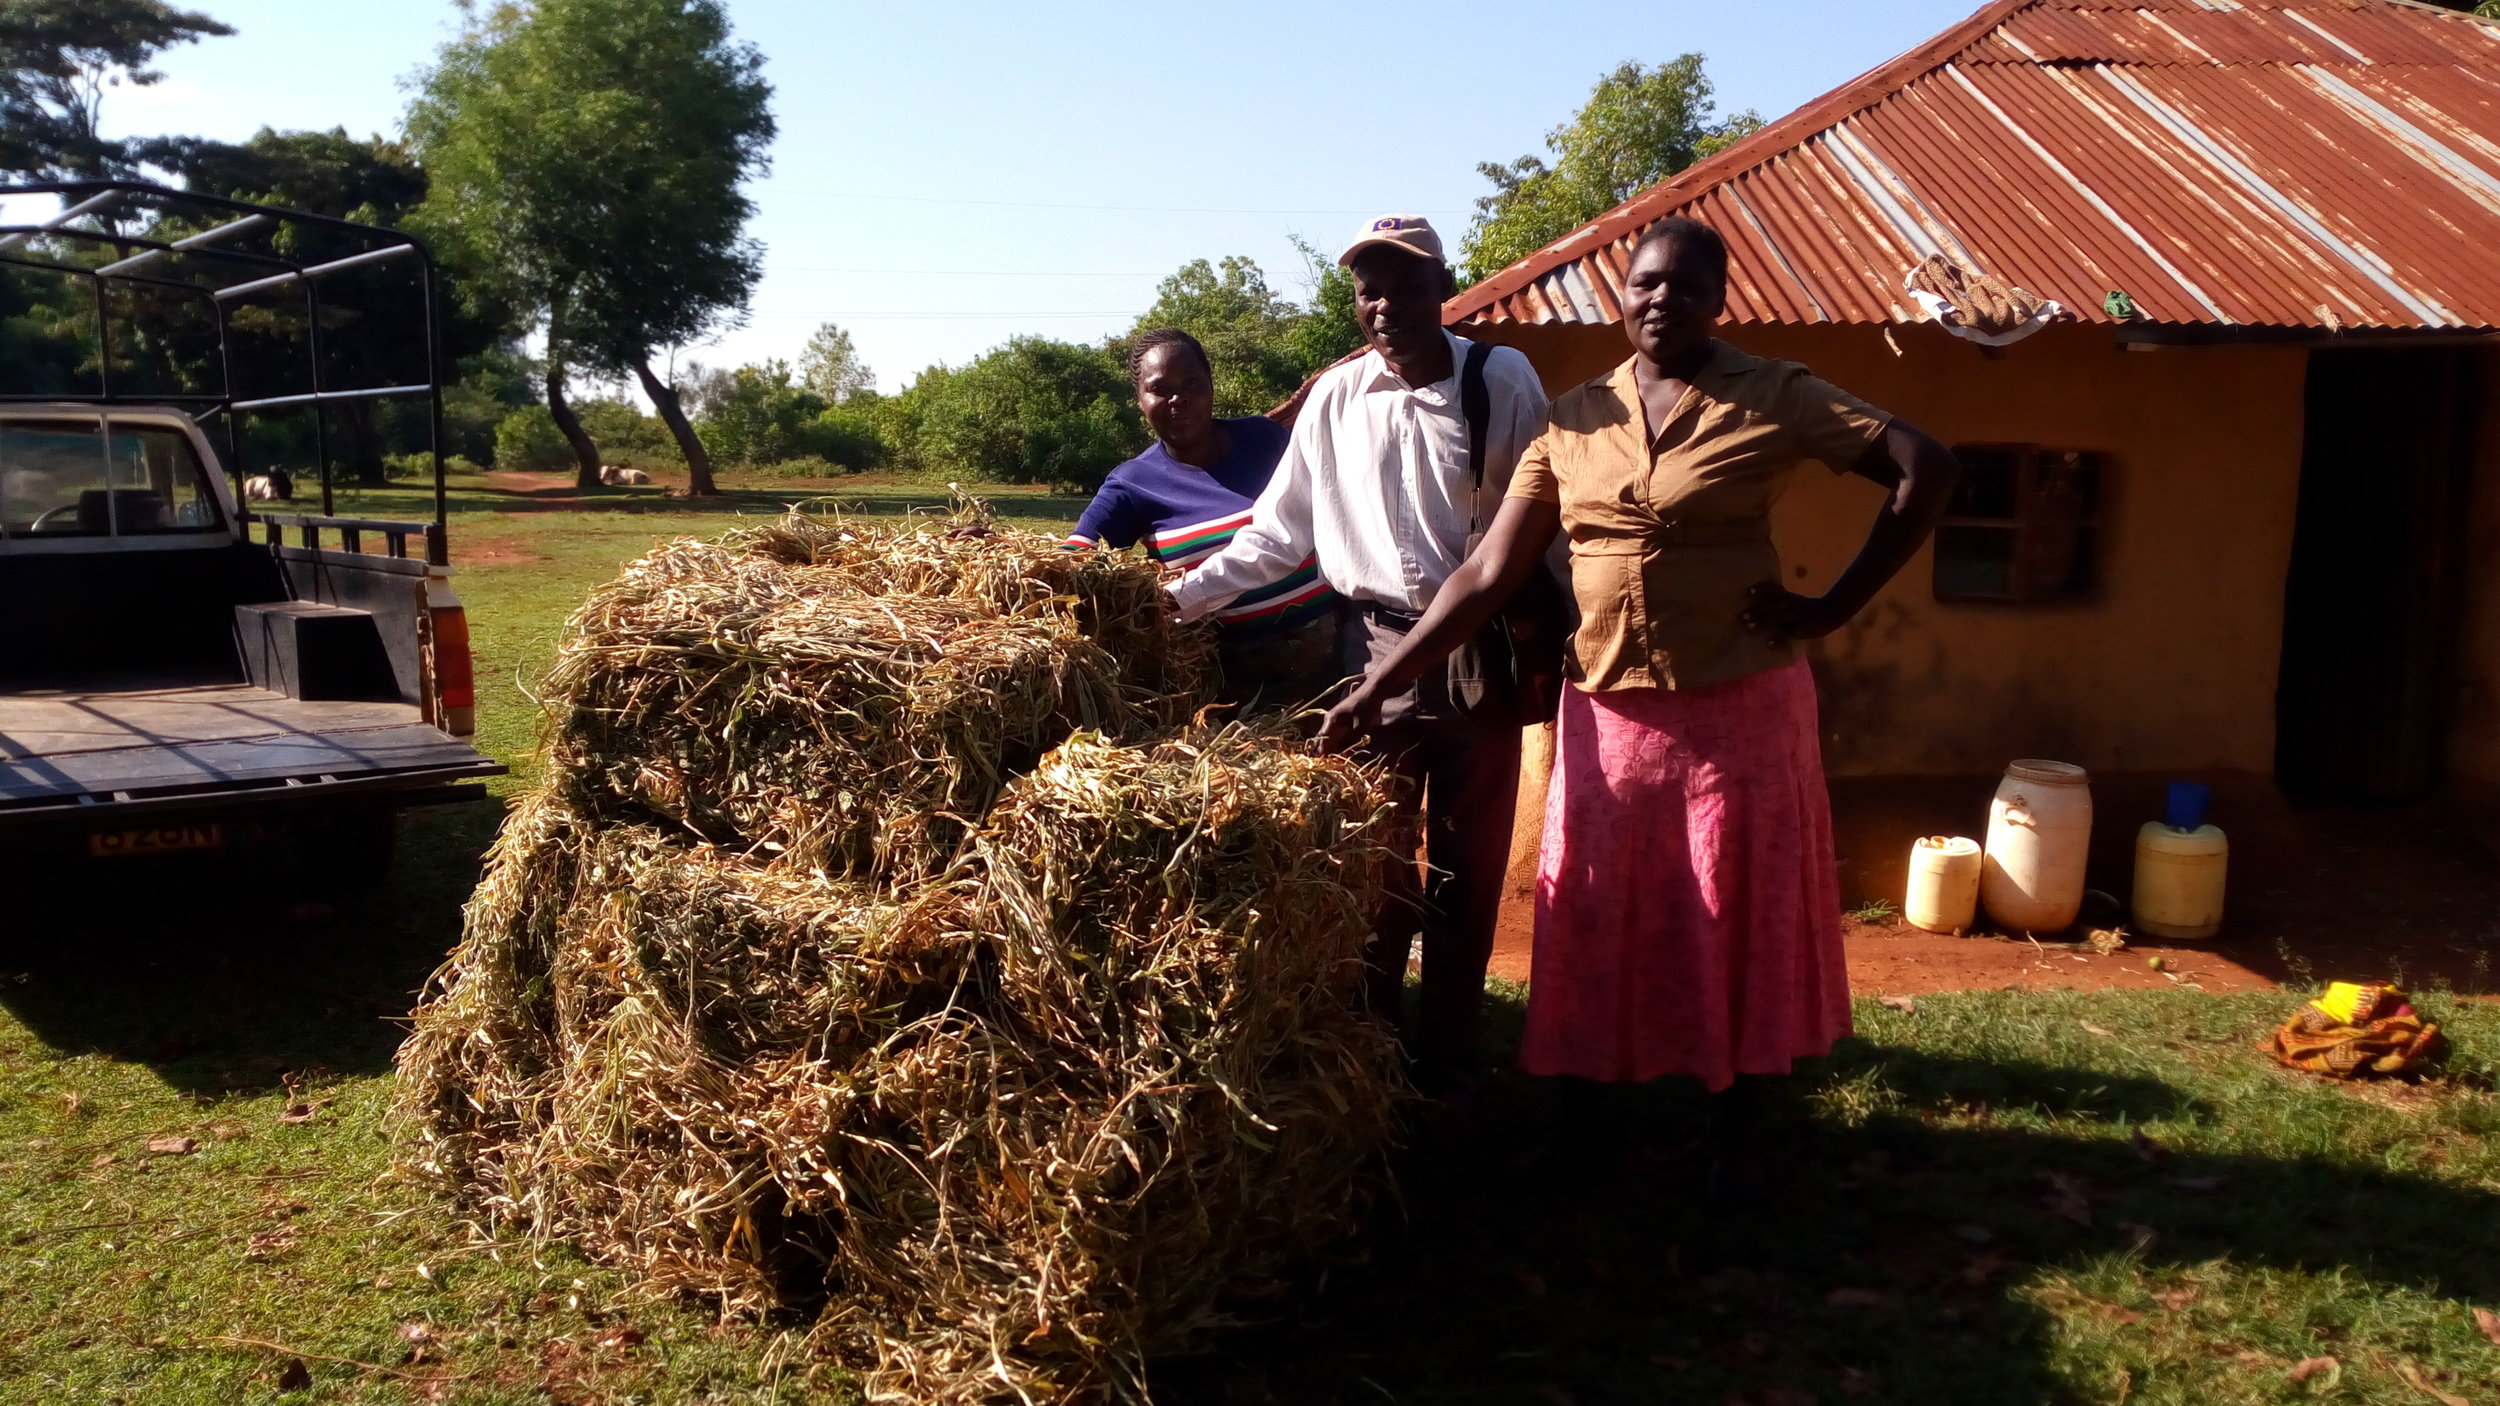 Haying is a profitable business venture.